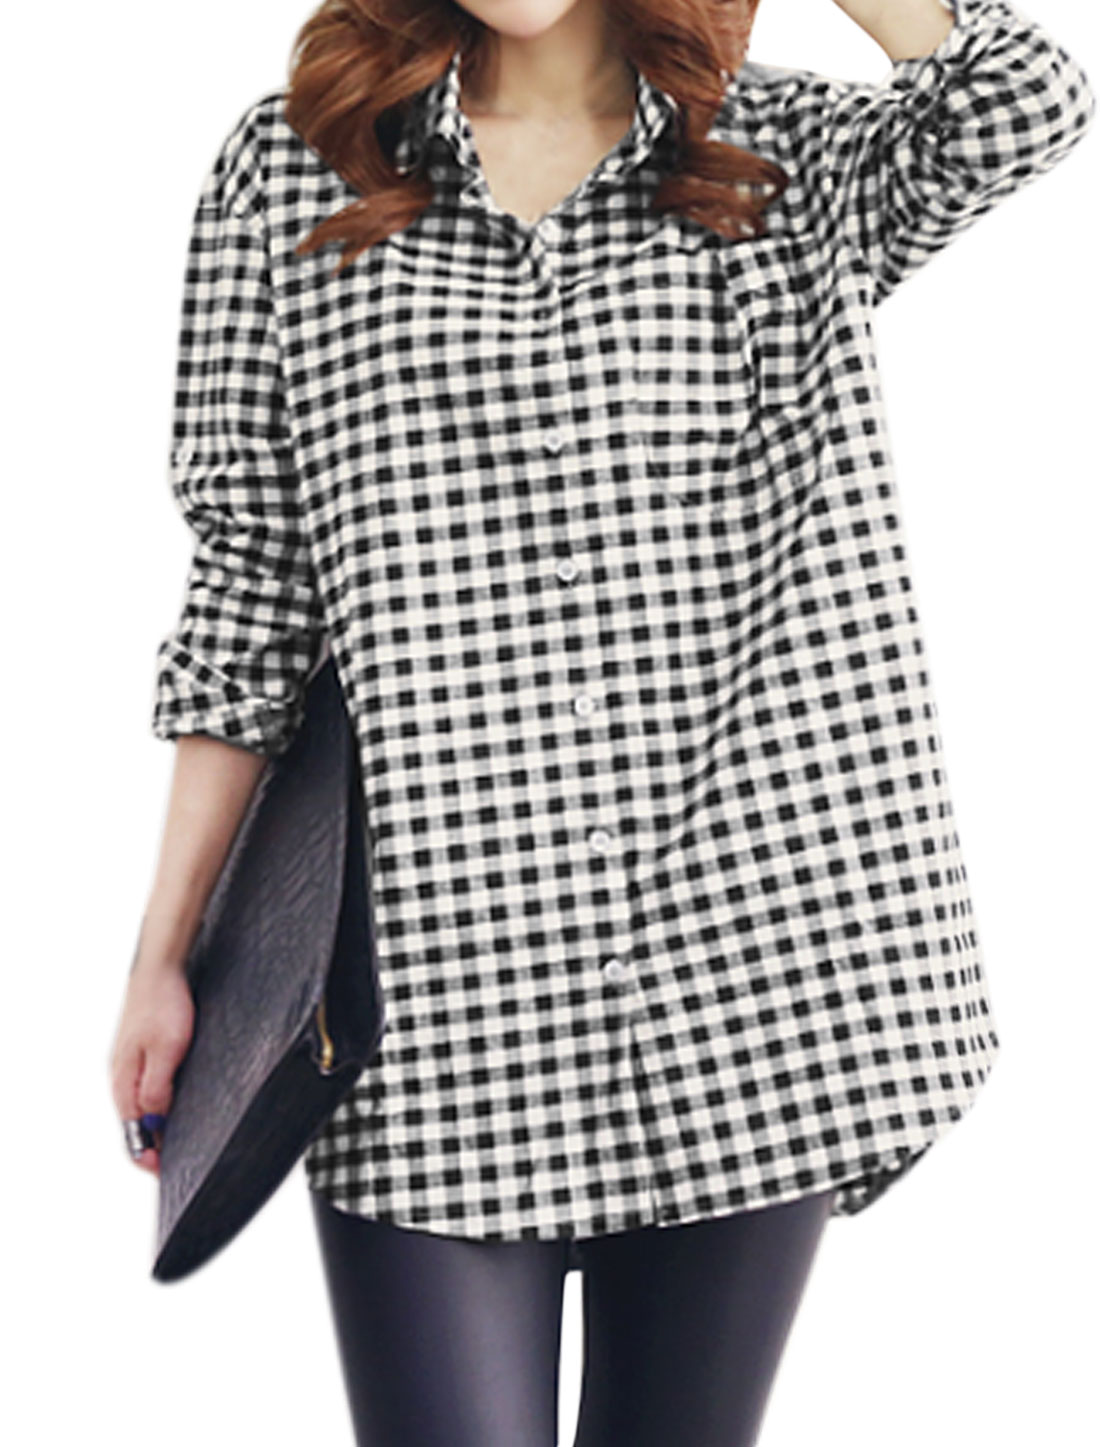 Women Rolled Up Sleeves Plaids Loose Tunic Shirt Black Beige S